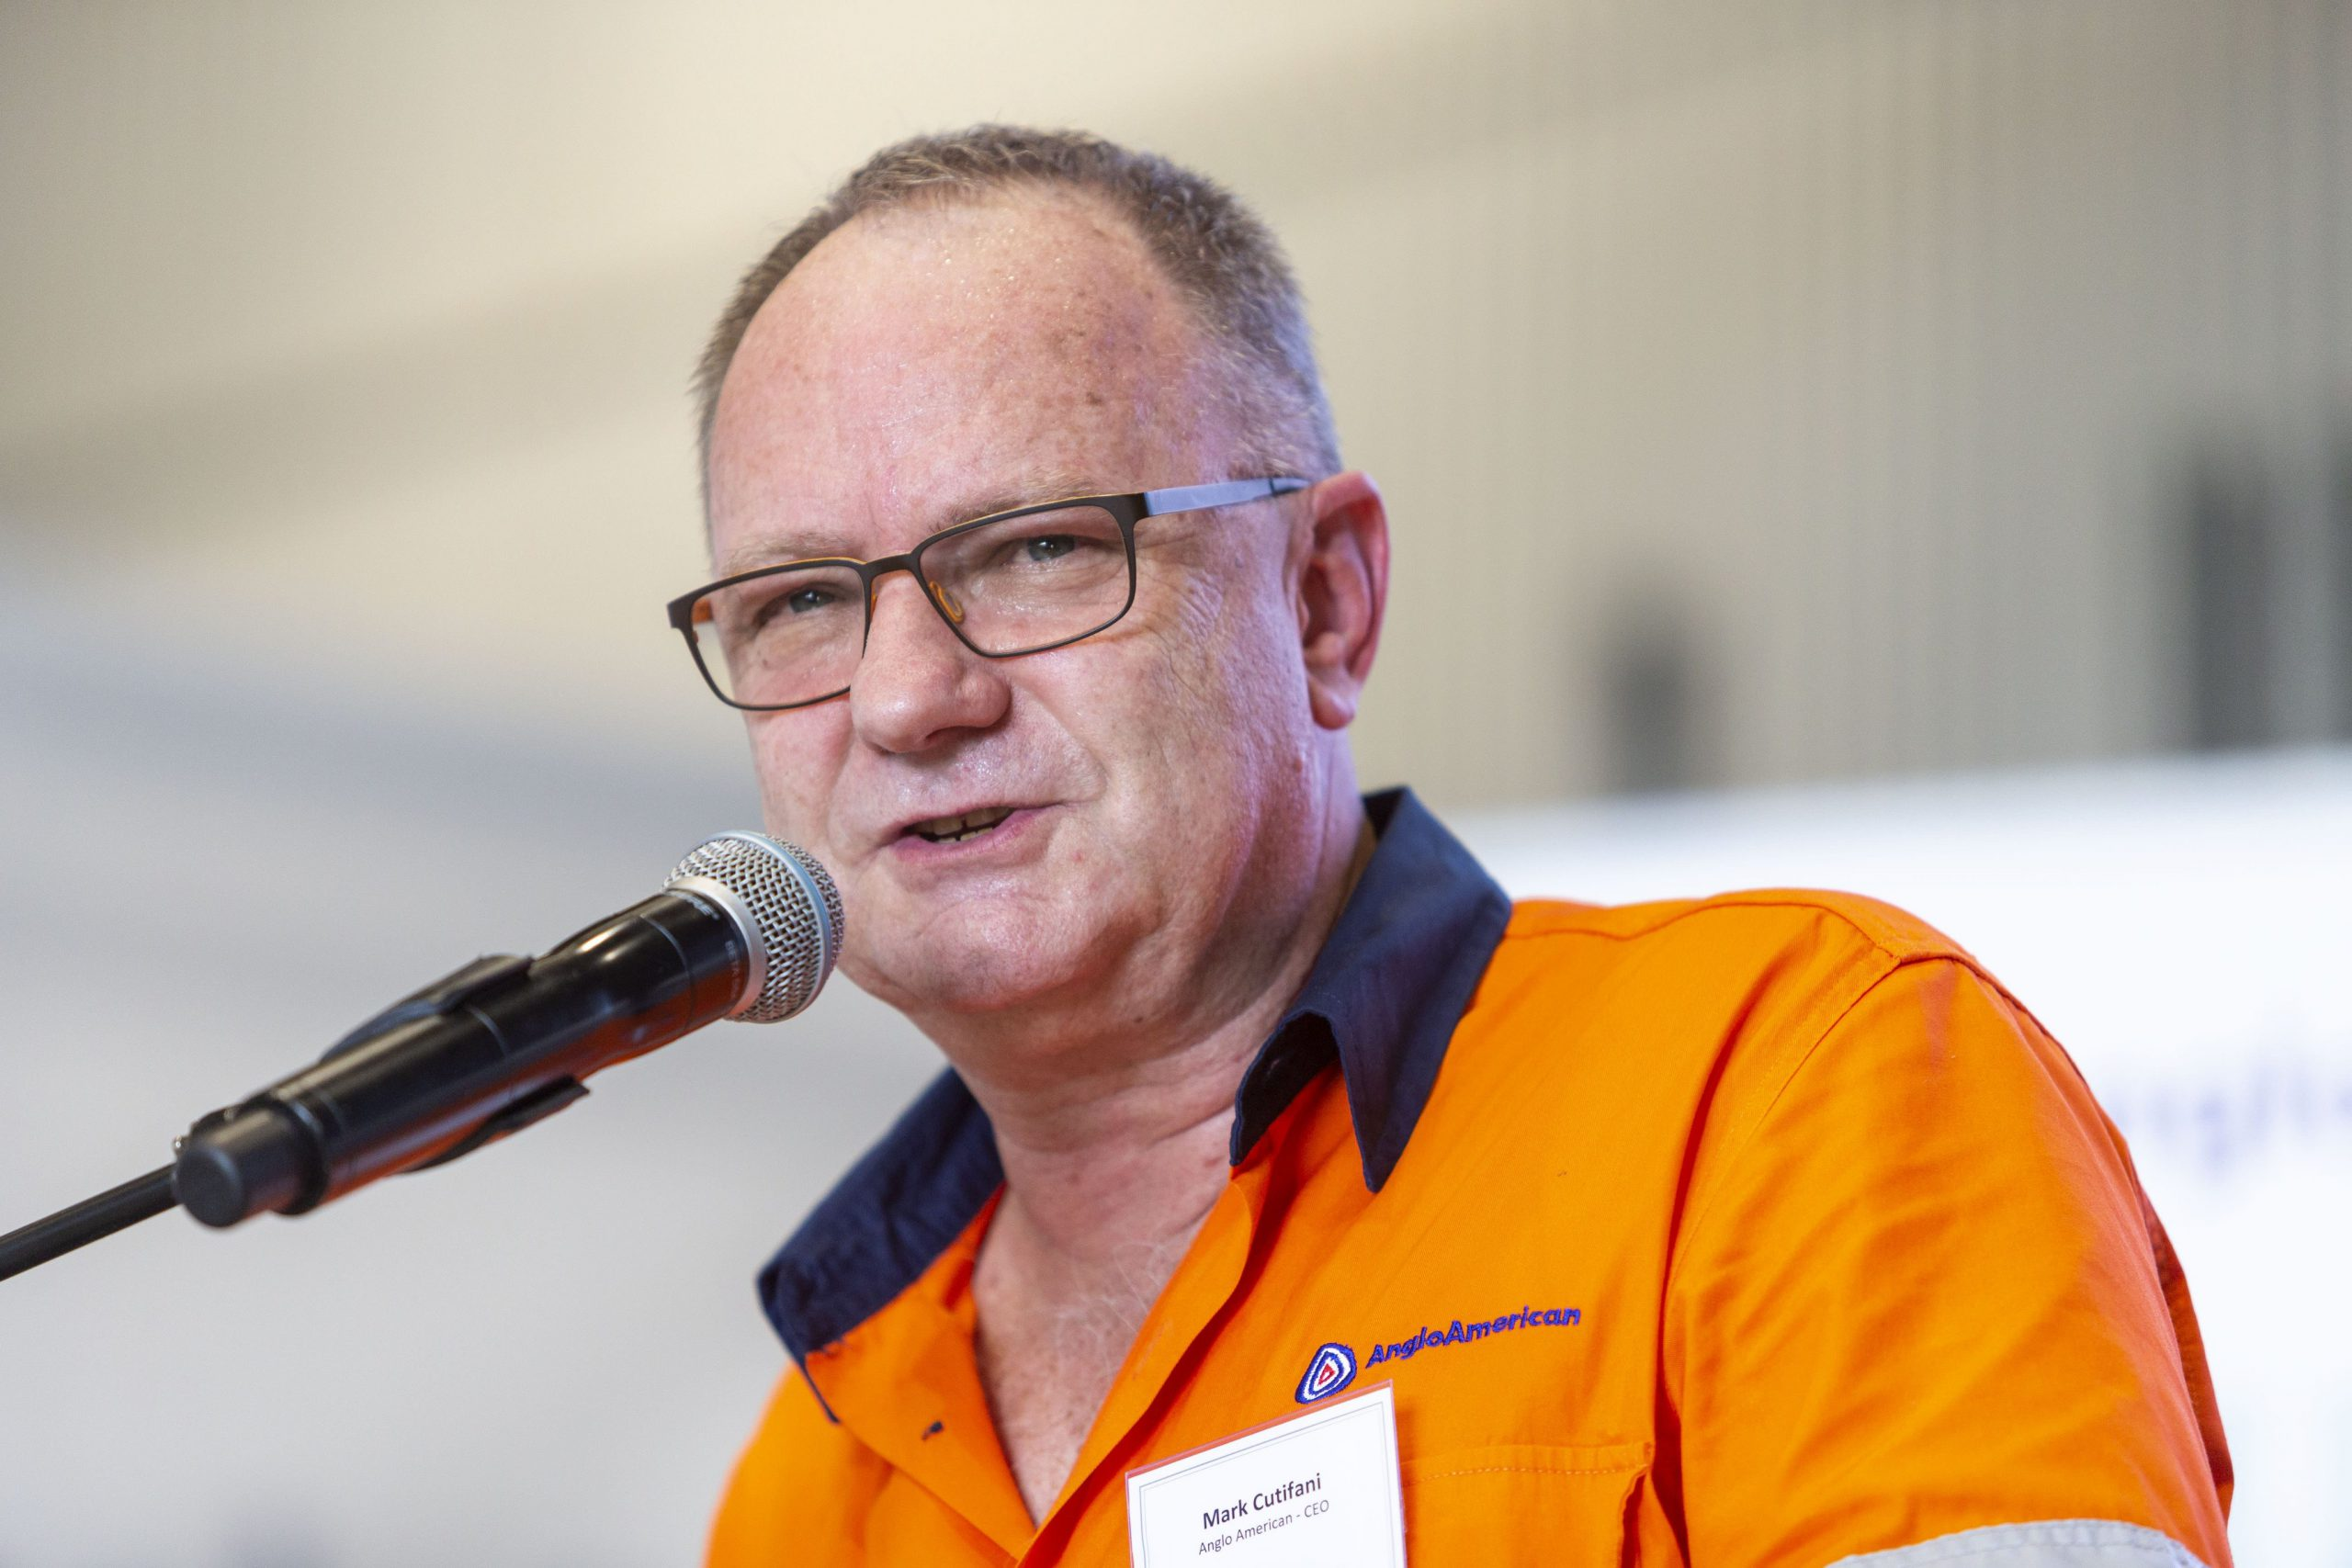 Anglo American wants to explore base metals in South Africa